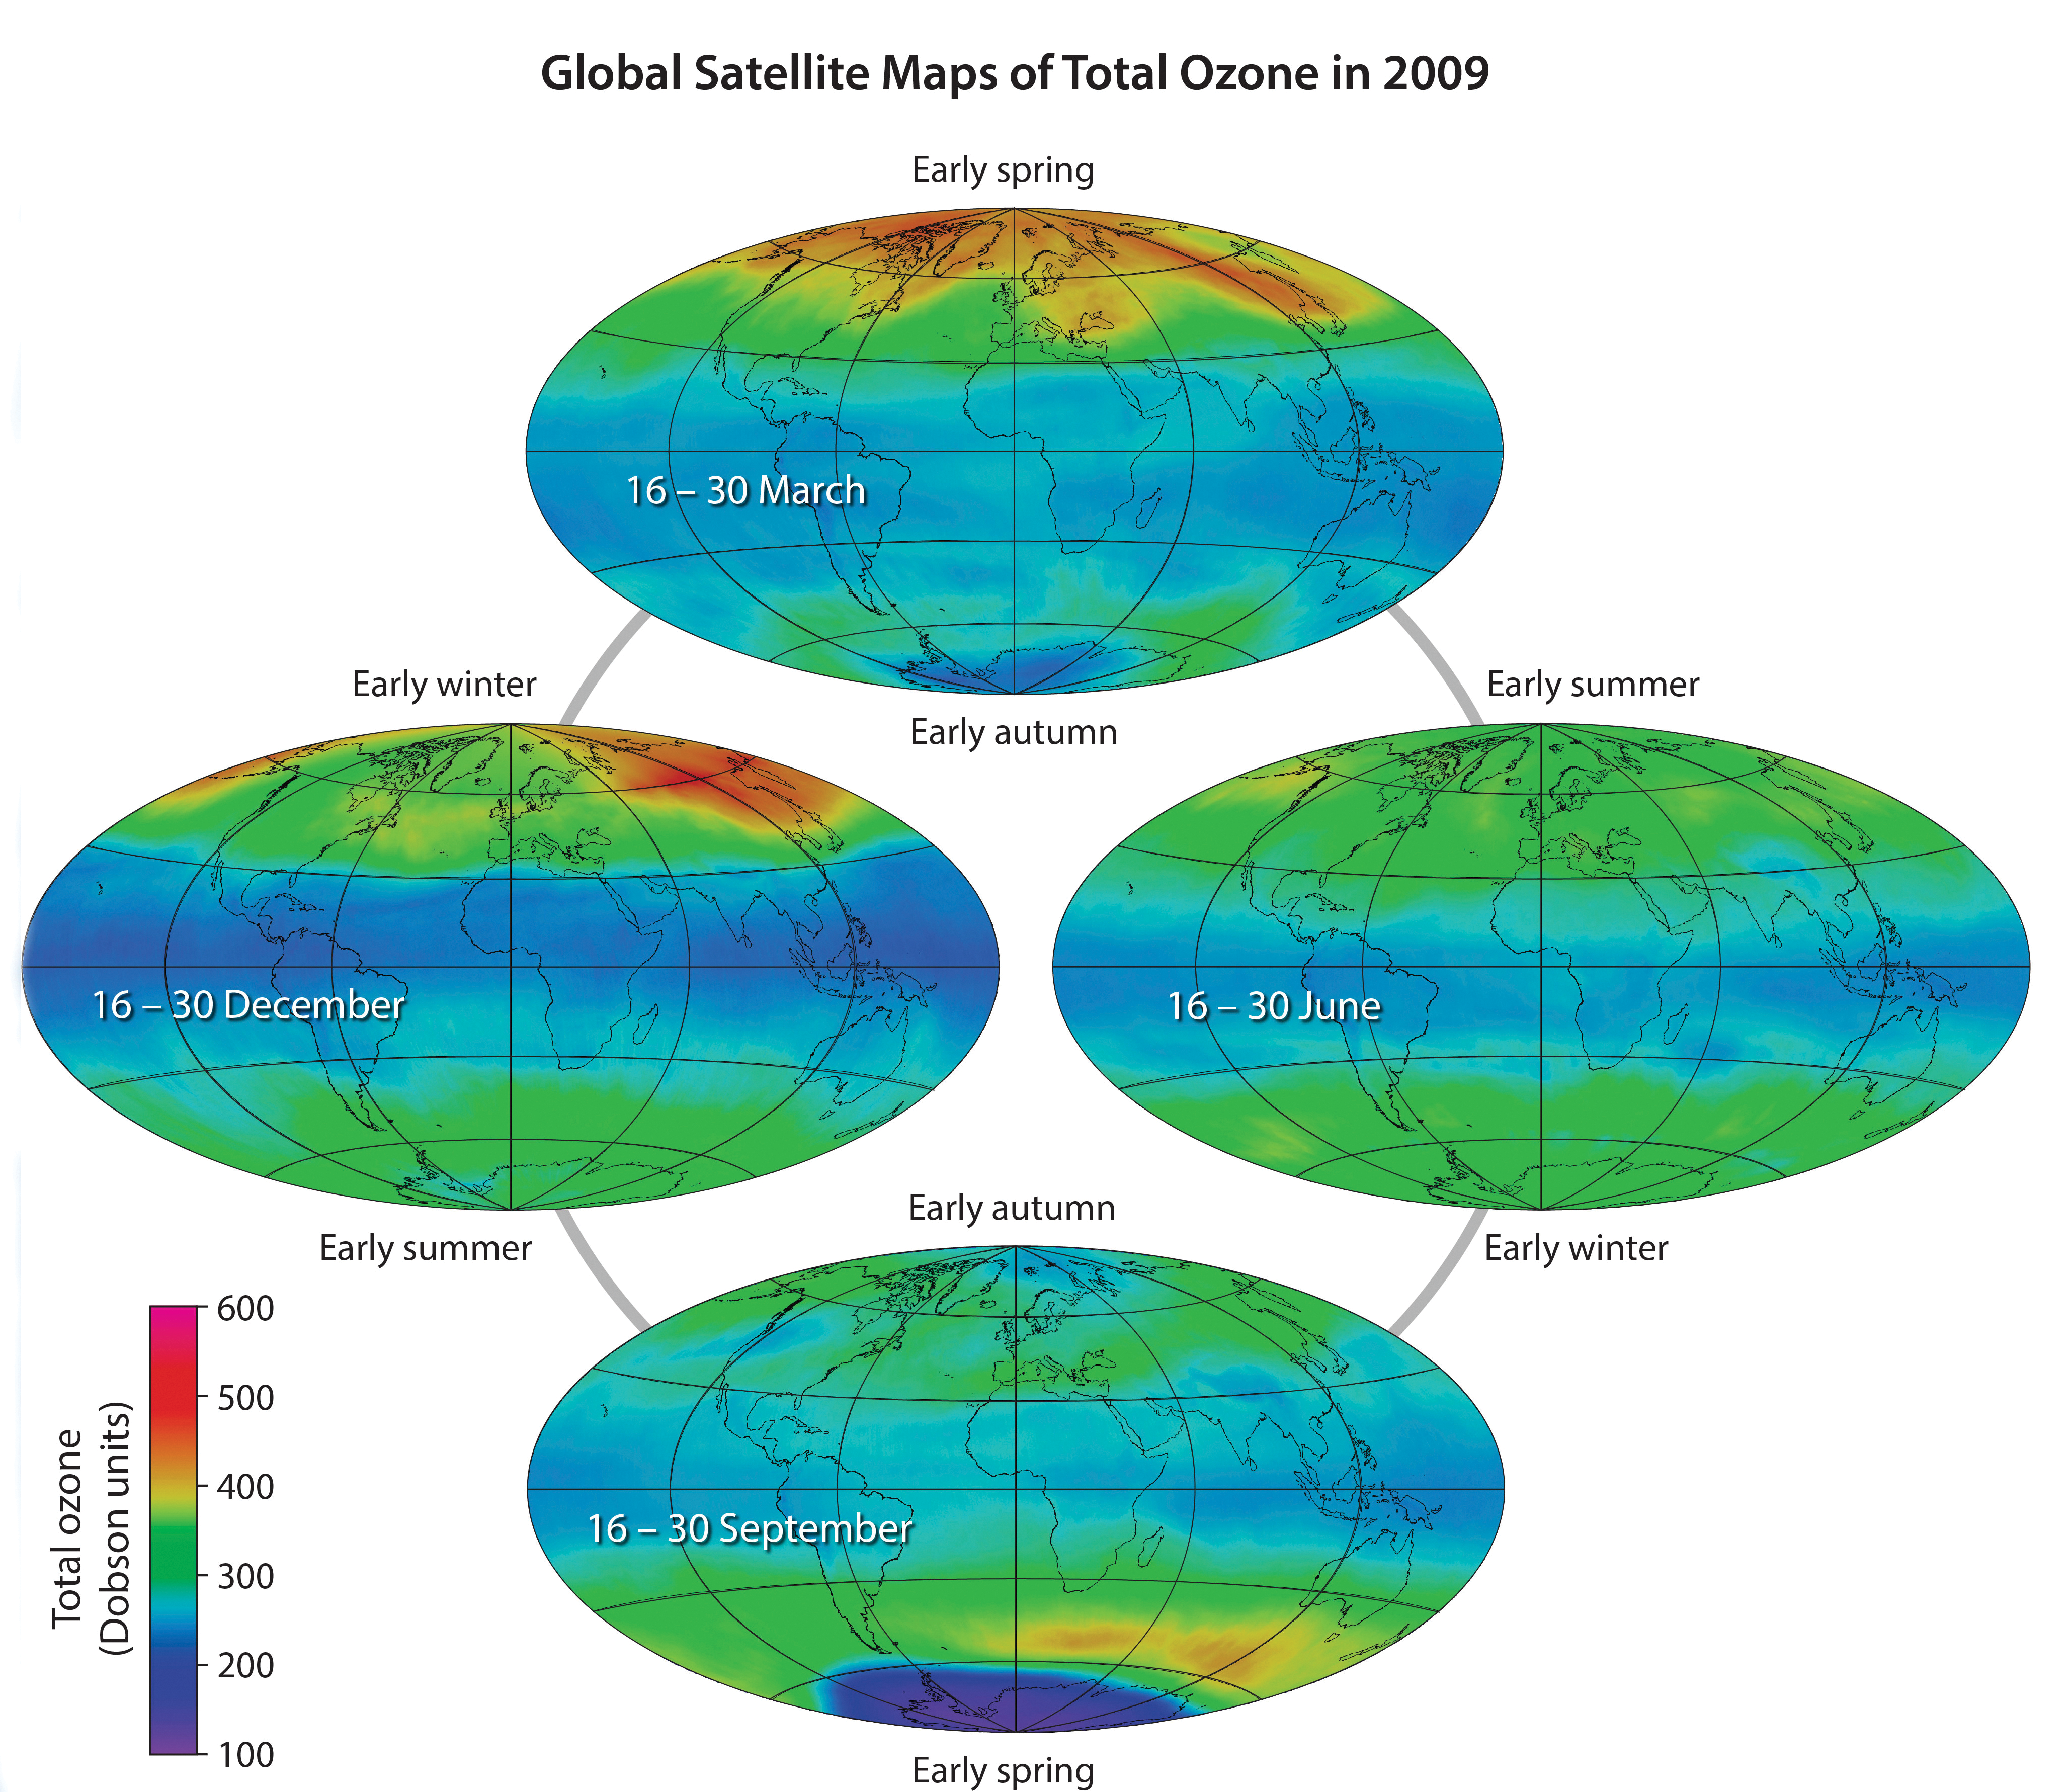 Global Satellite Maps of Total Ozone in 2009